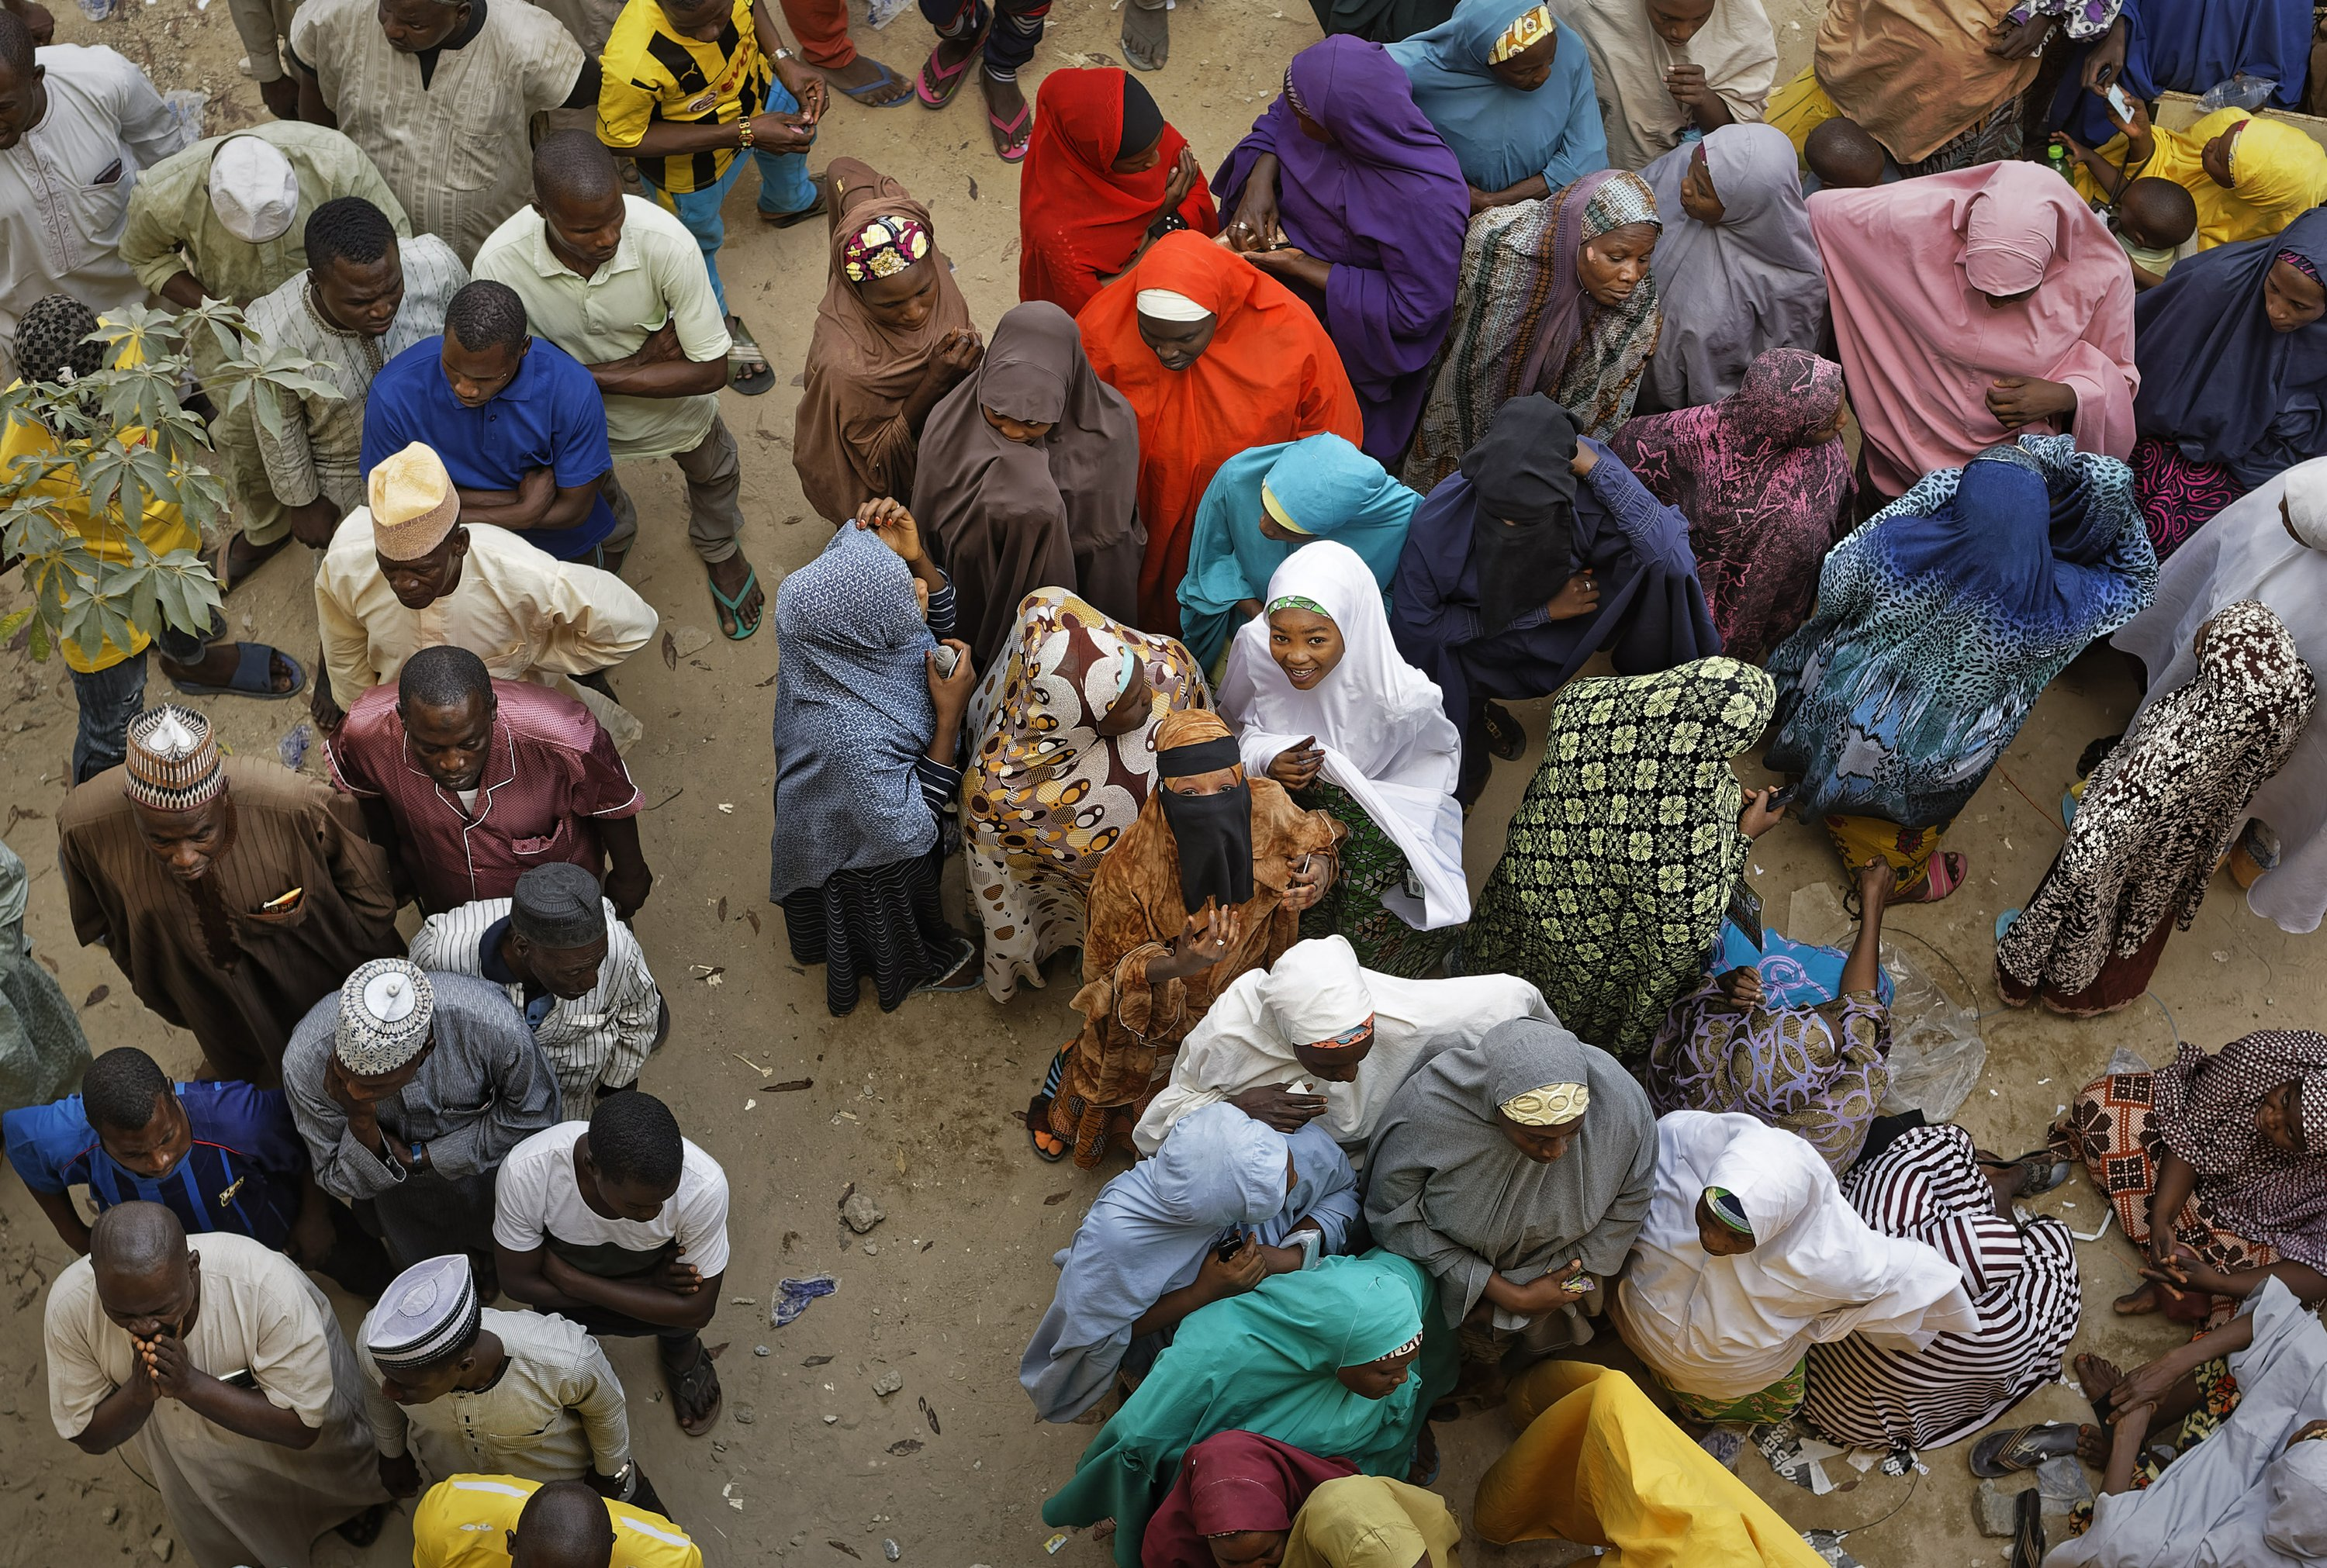 Counting starts in Nigeria's delayed poll marked by violence